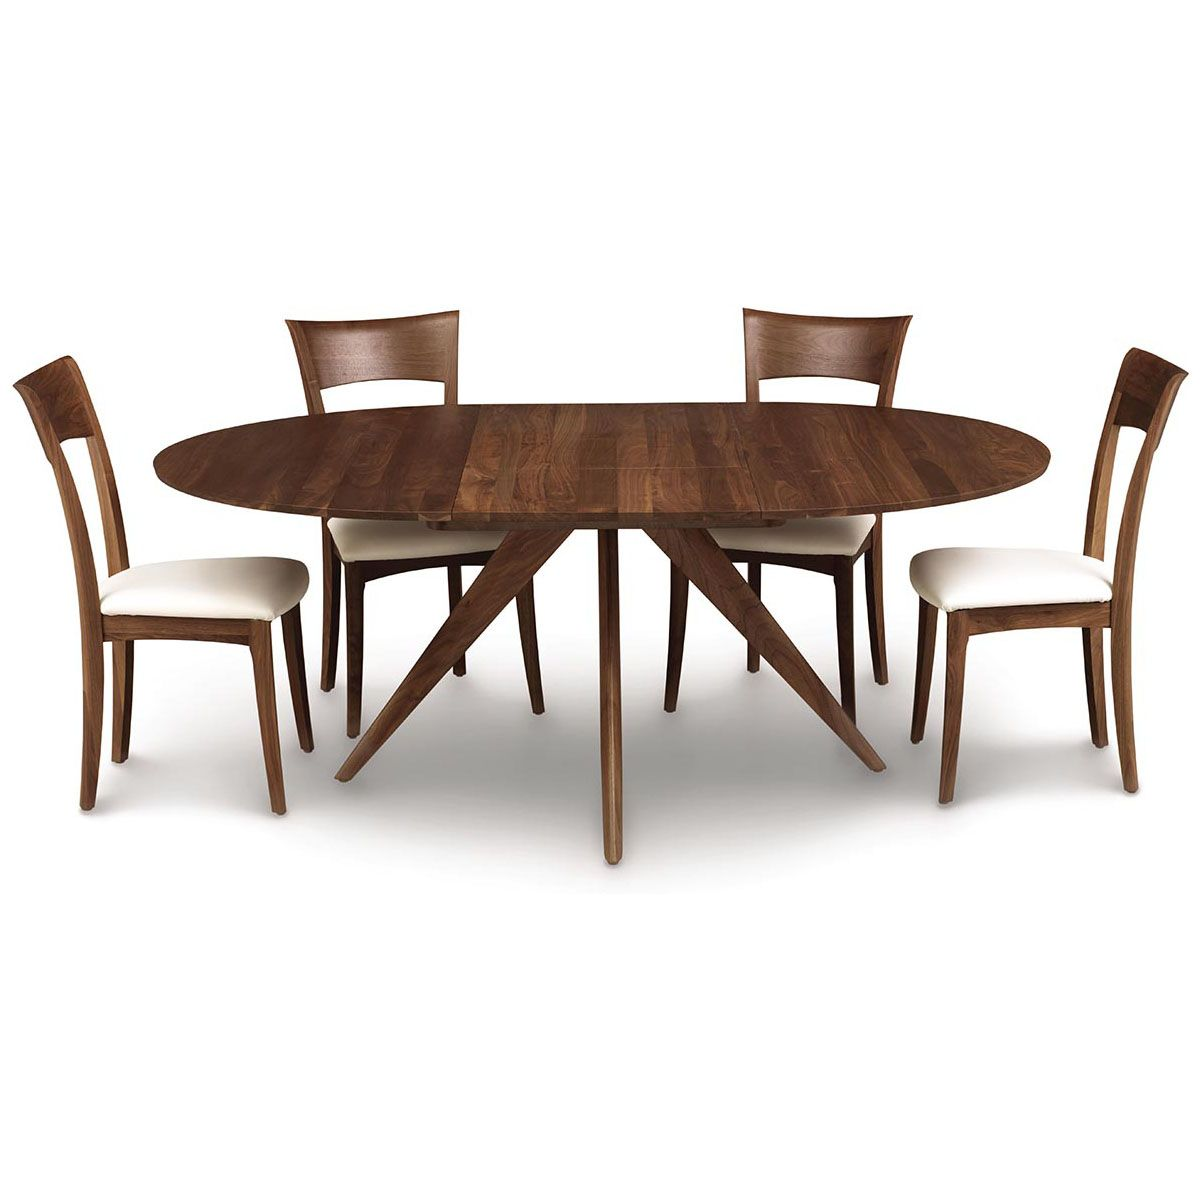 Copeland catalina 54 round extension tables 6 cre 54 04